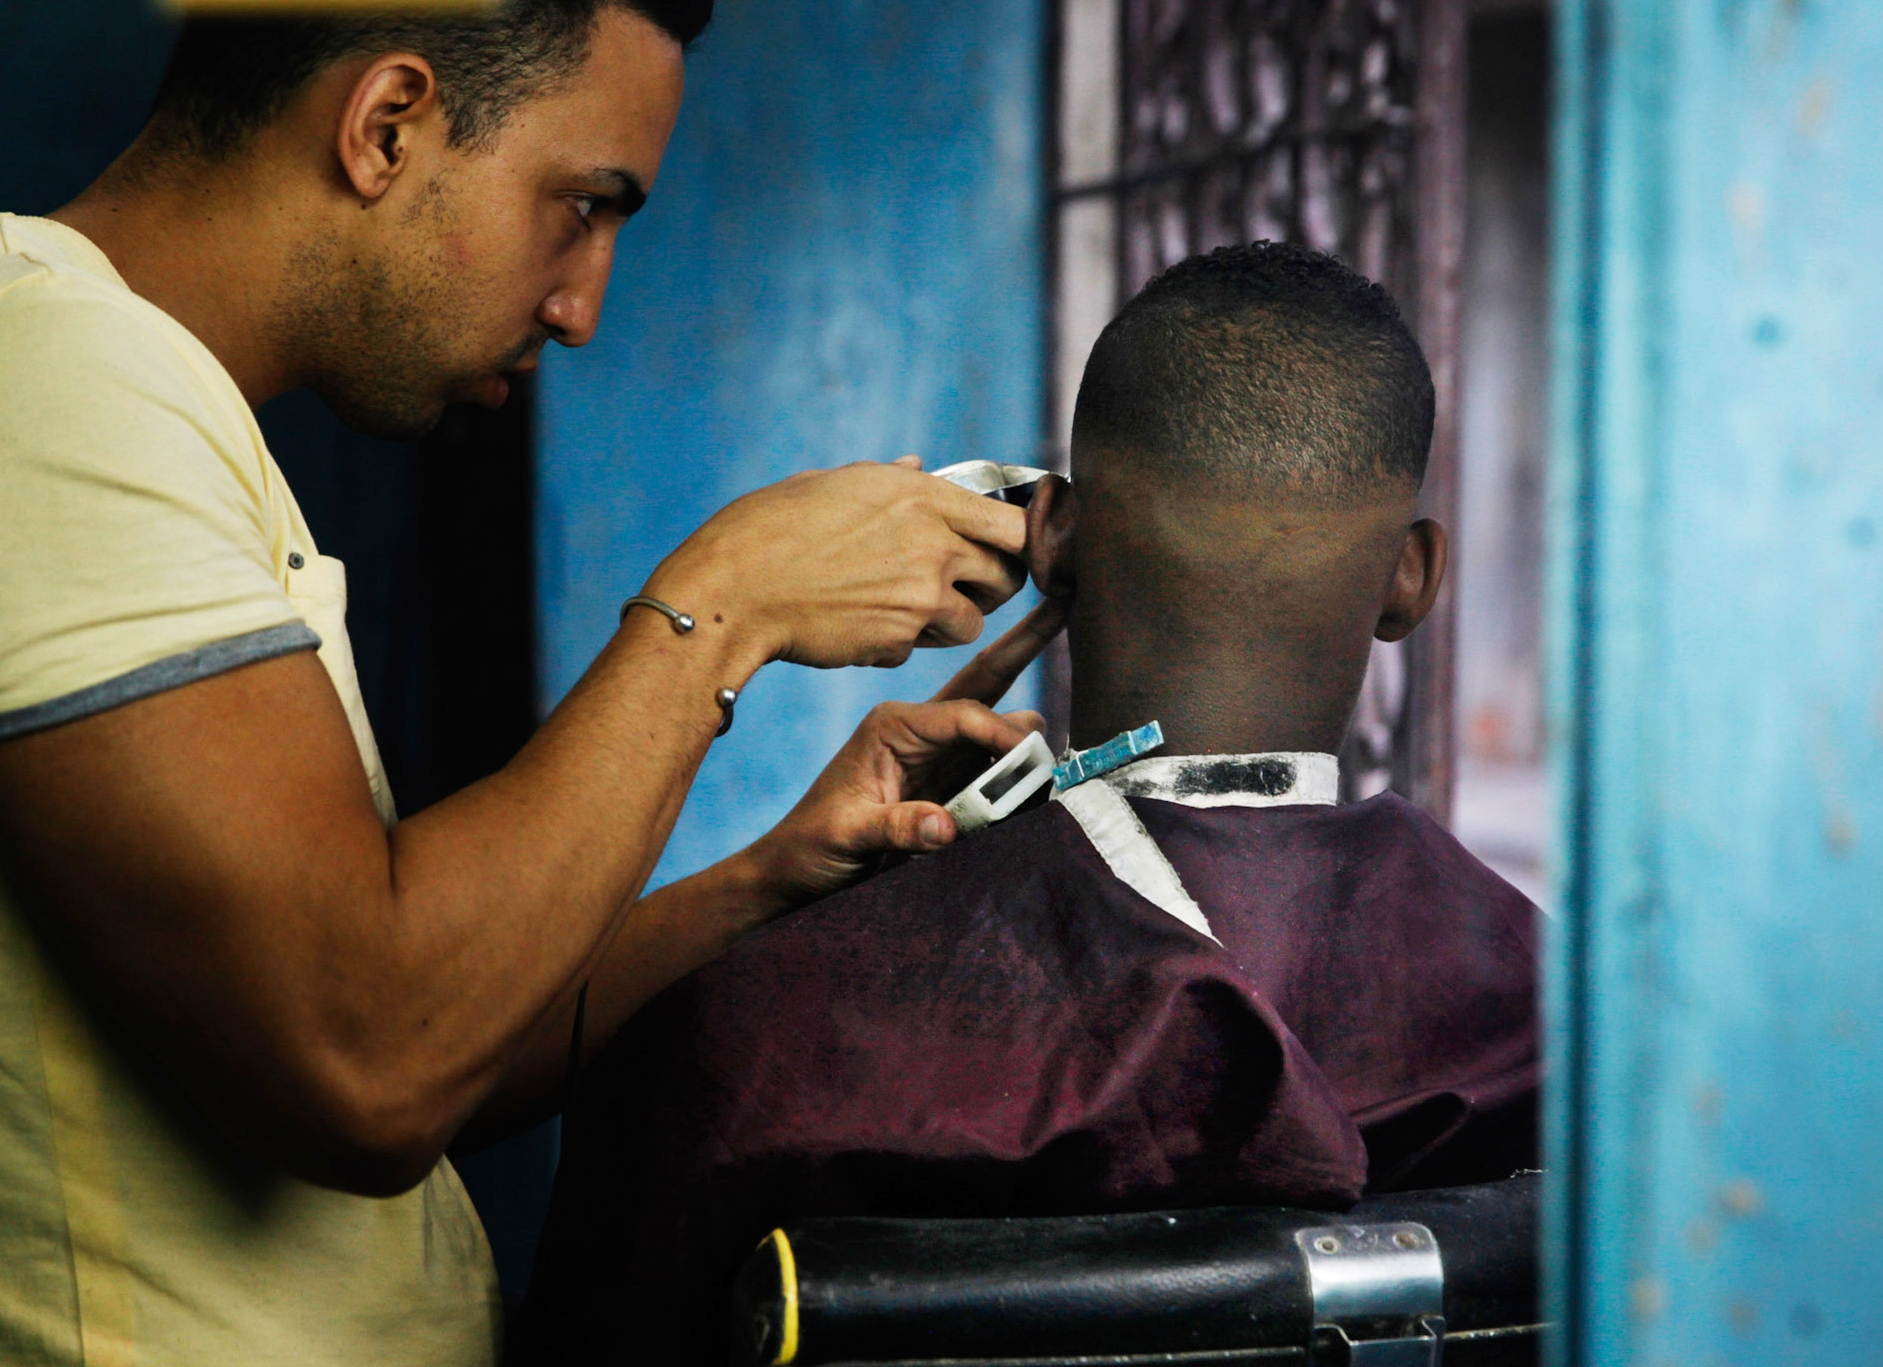 HAIRCUTS OF HAVANA — Russell Monk